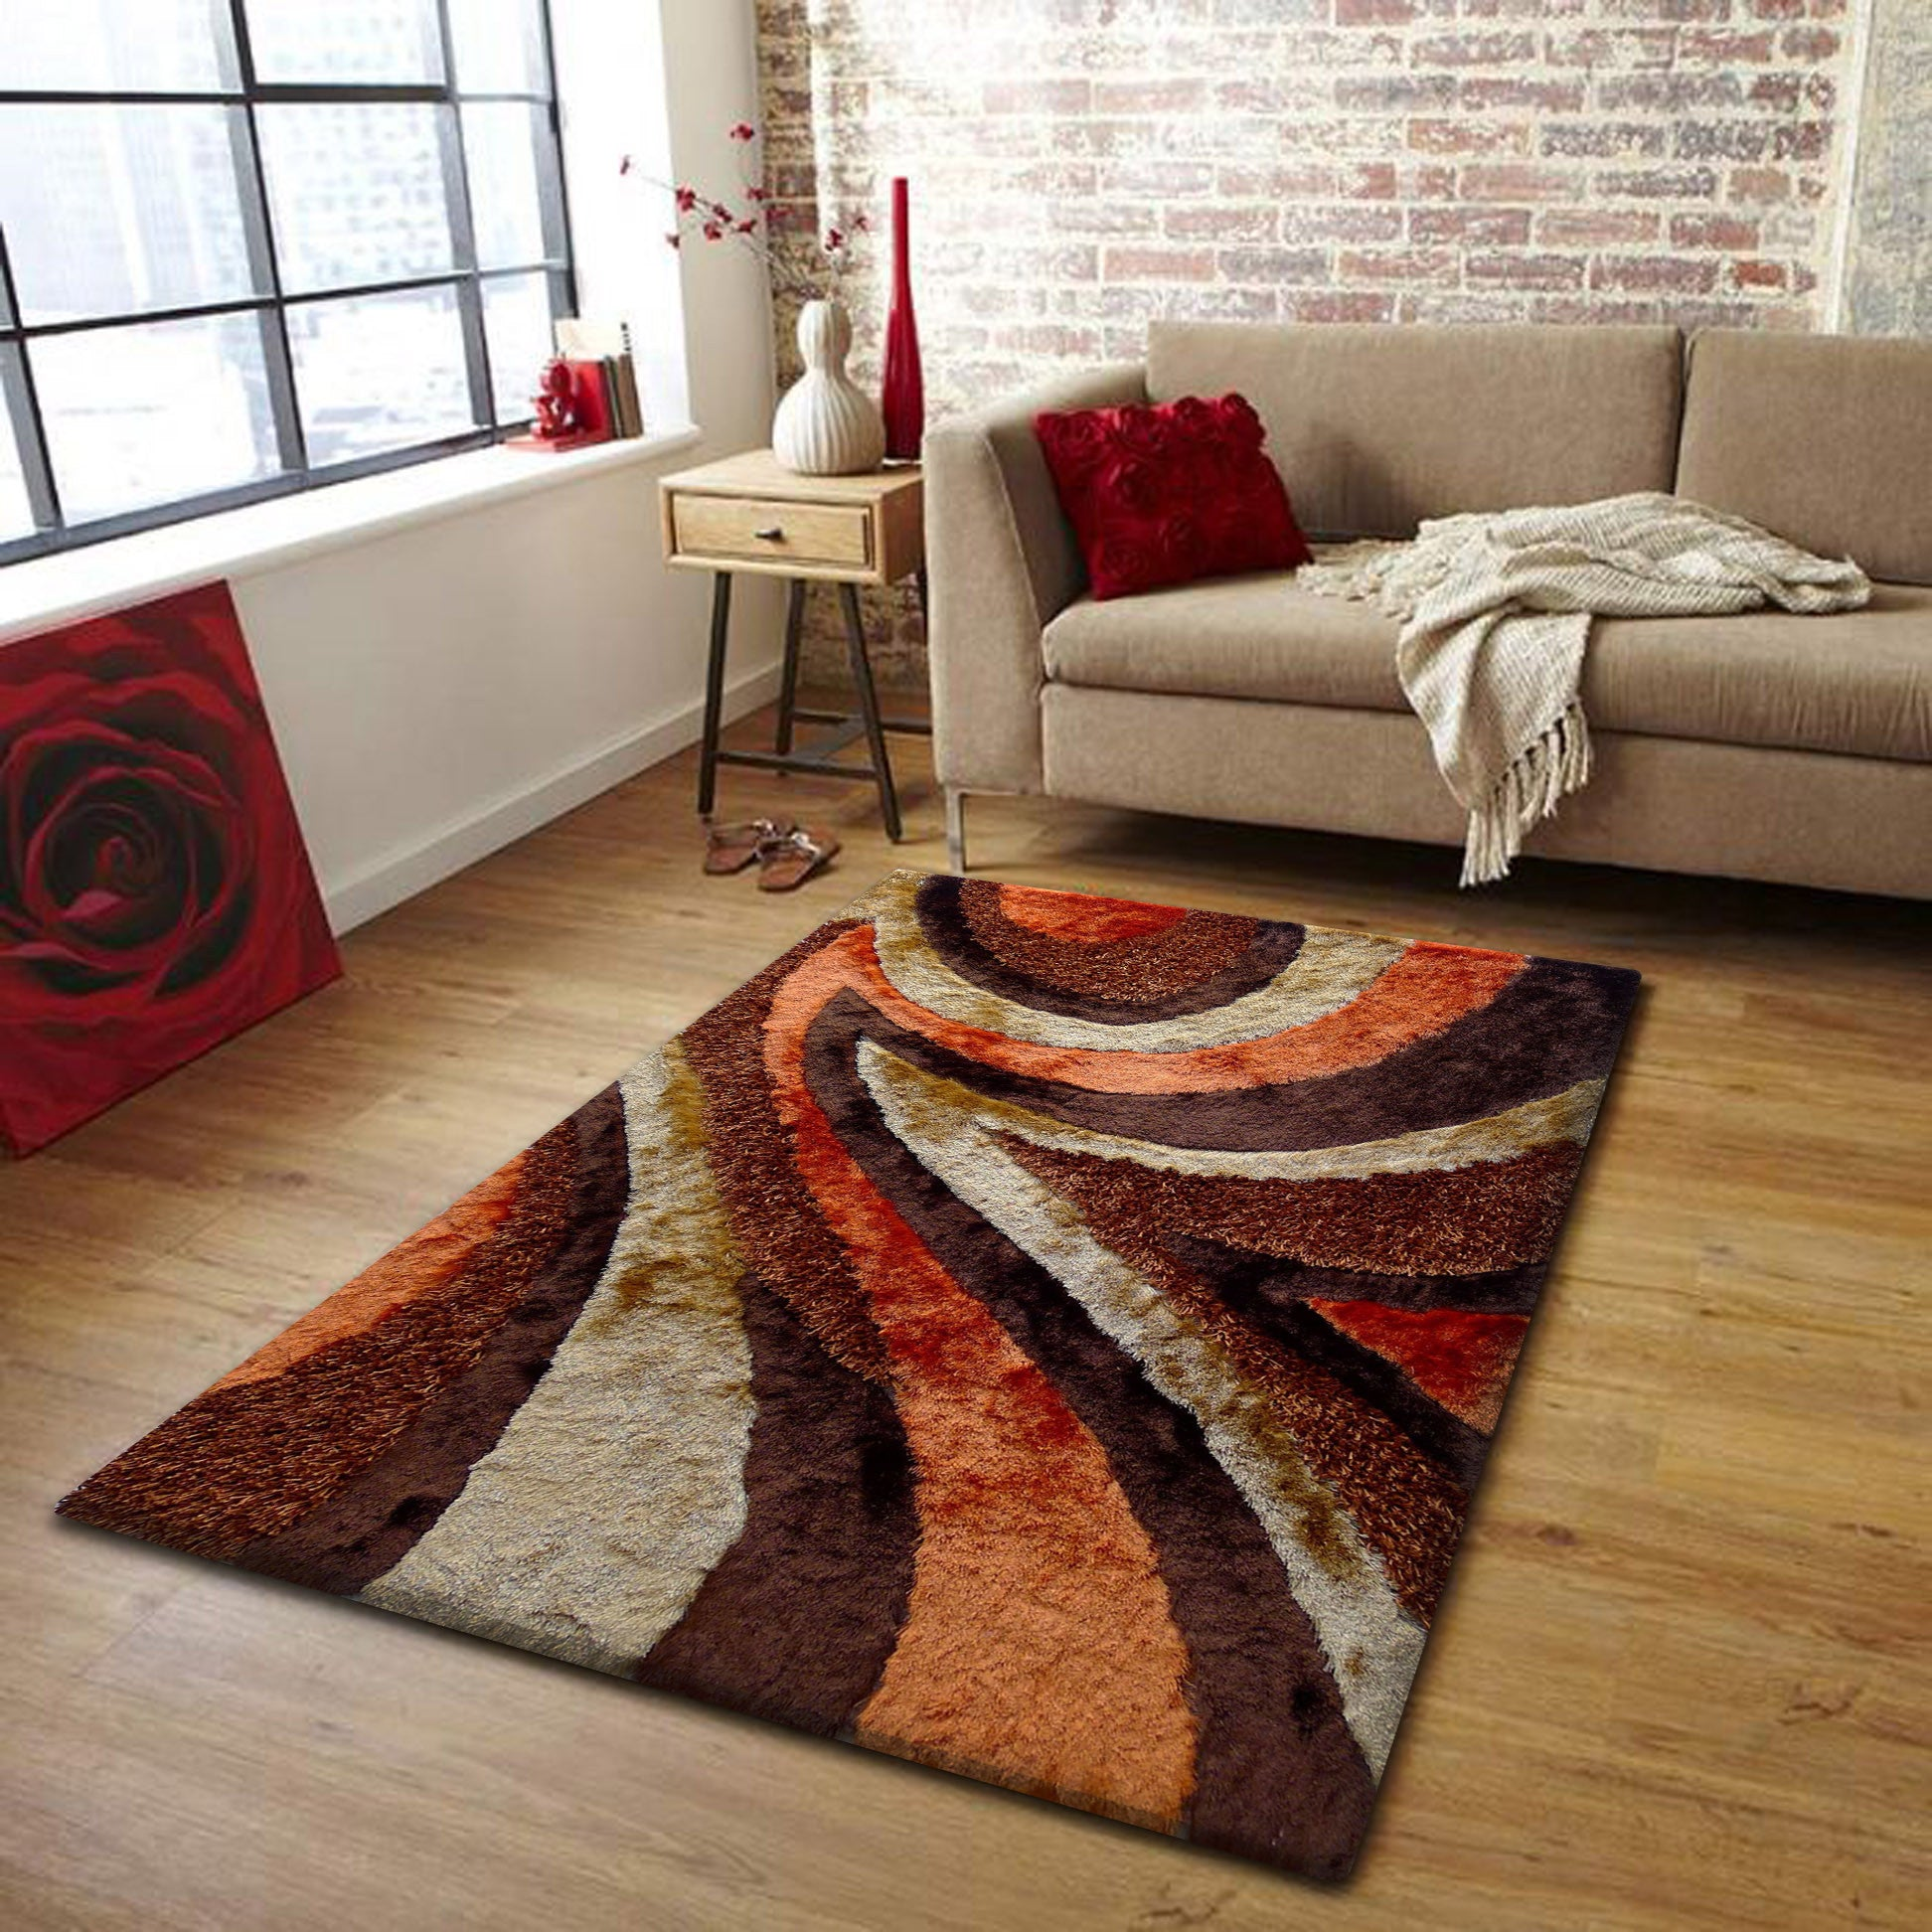 Plush Area Rug In Brown and Orange by Rug Addiction